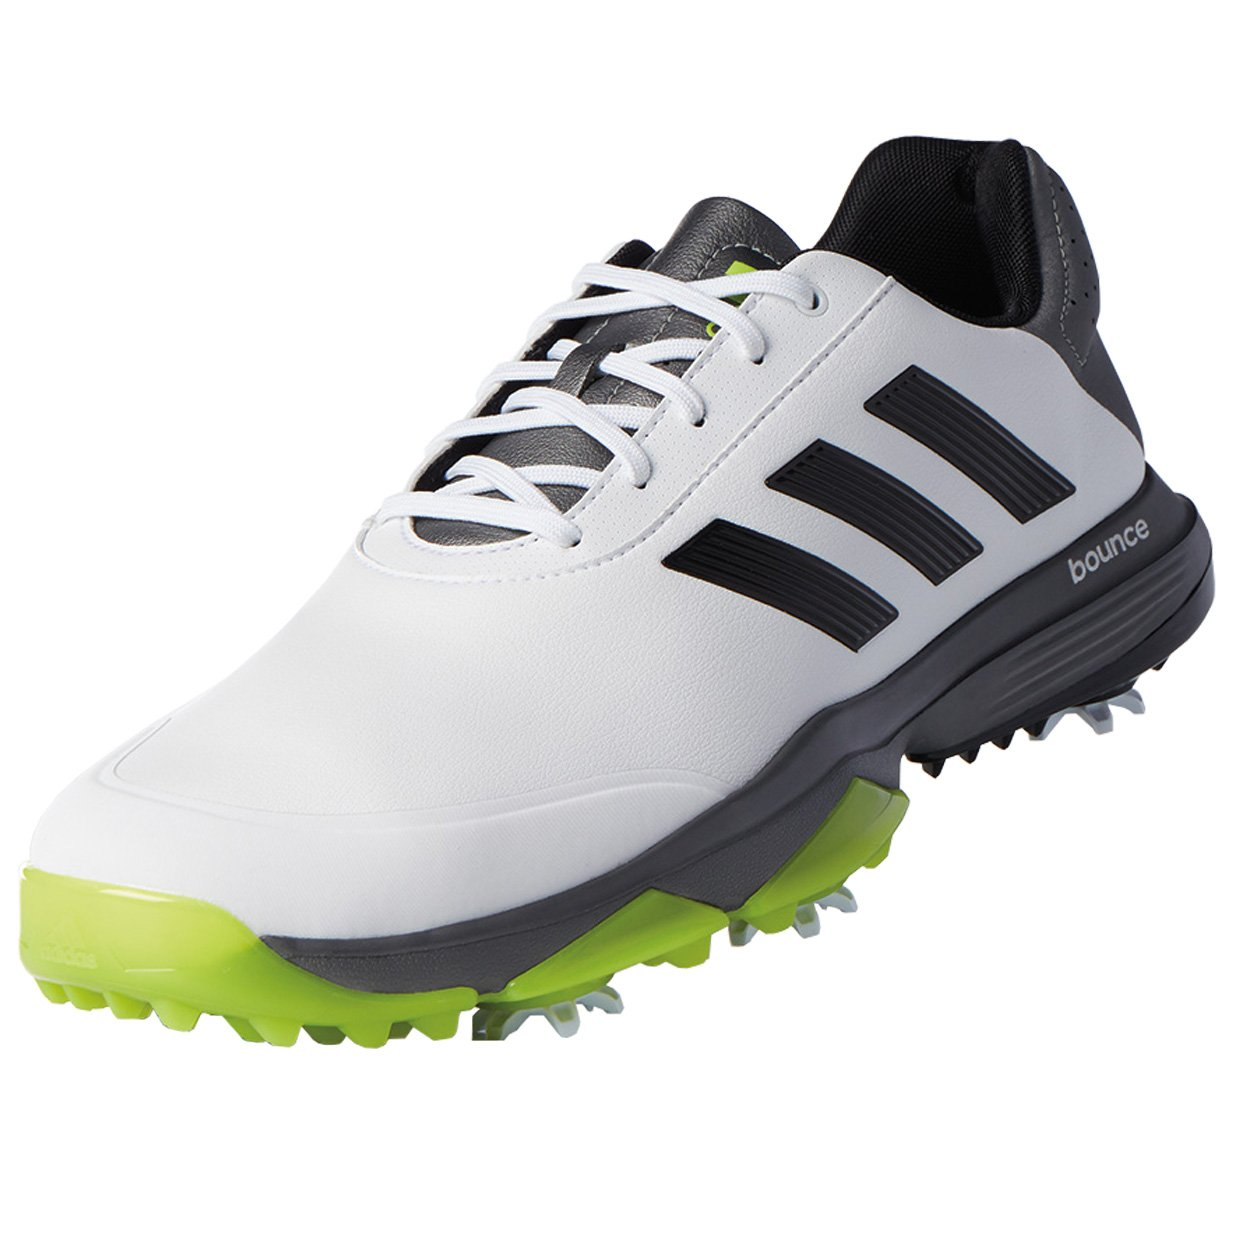 adidas Men's Adipower Bounce Golf Shoe, White/Black/Solar Slime, 13 M US by adidas